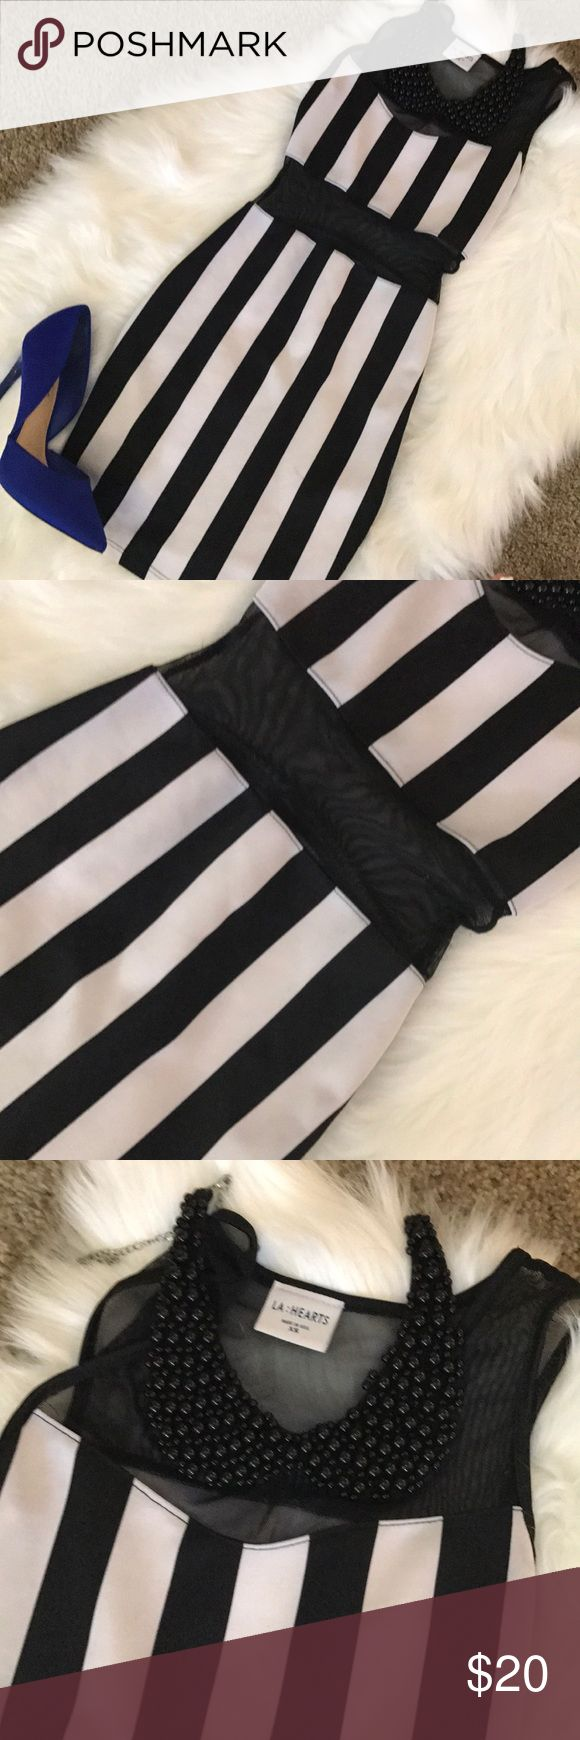 LA:Hearts fitted bodycon black and white dress LA:Hearts fitted bodycon black and white dress! See through top and stomach area in great condition for a fun night out! La Hearts Dresses Mini